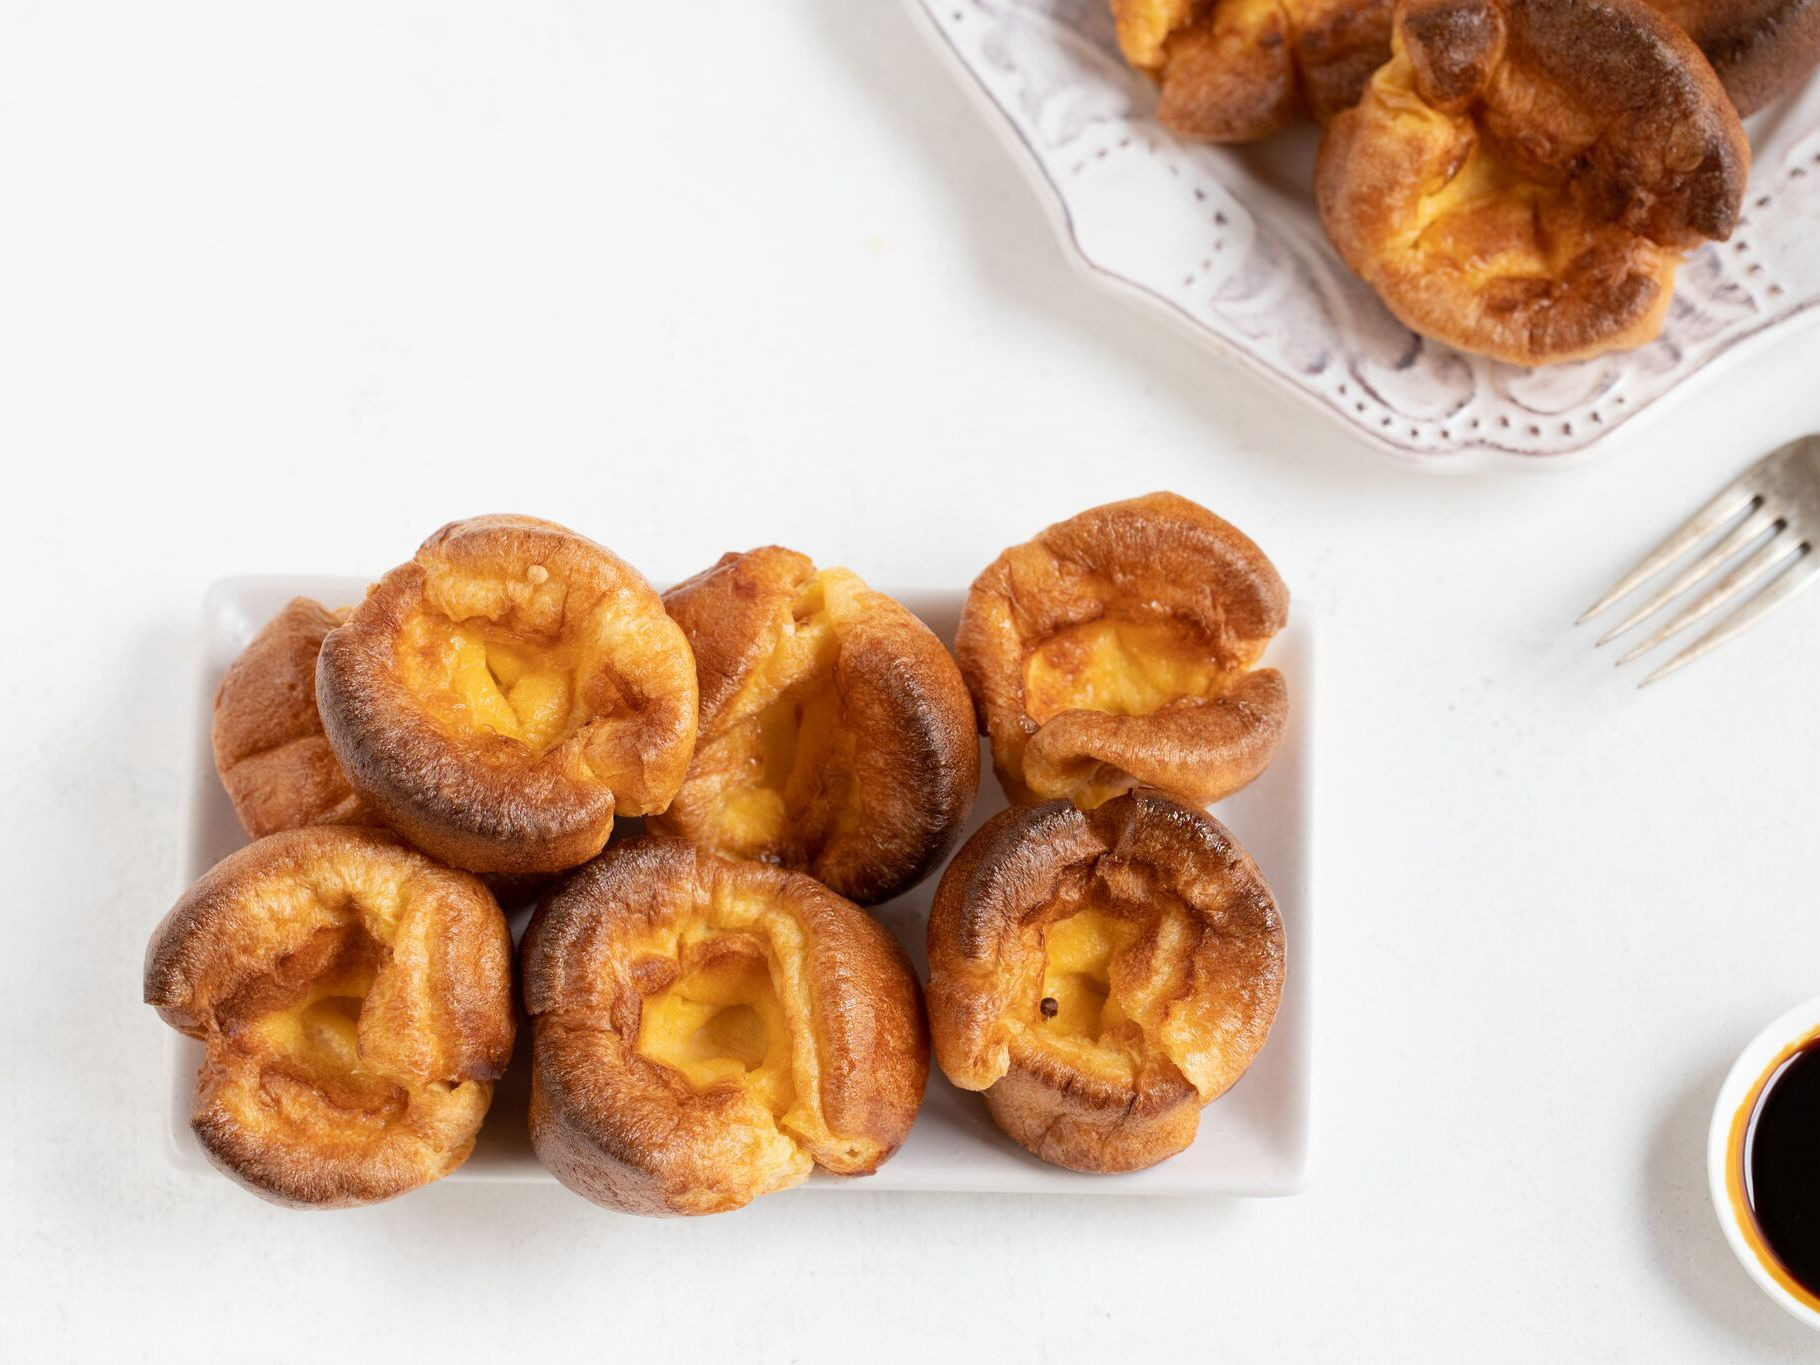 Tips To Make Sure Your Yorkshire Puddings Always Rise